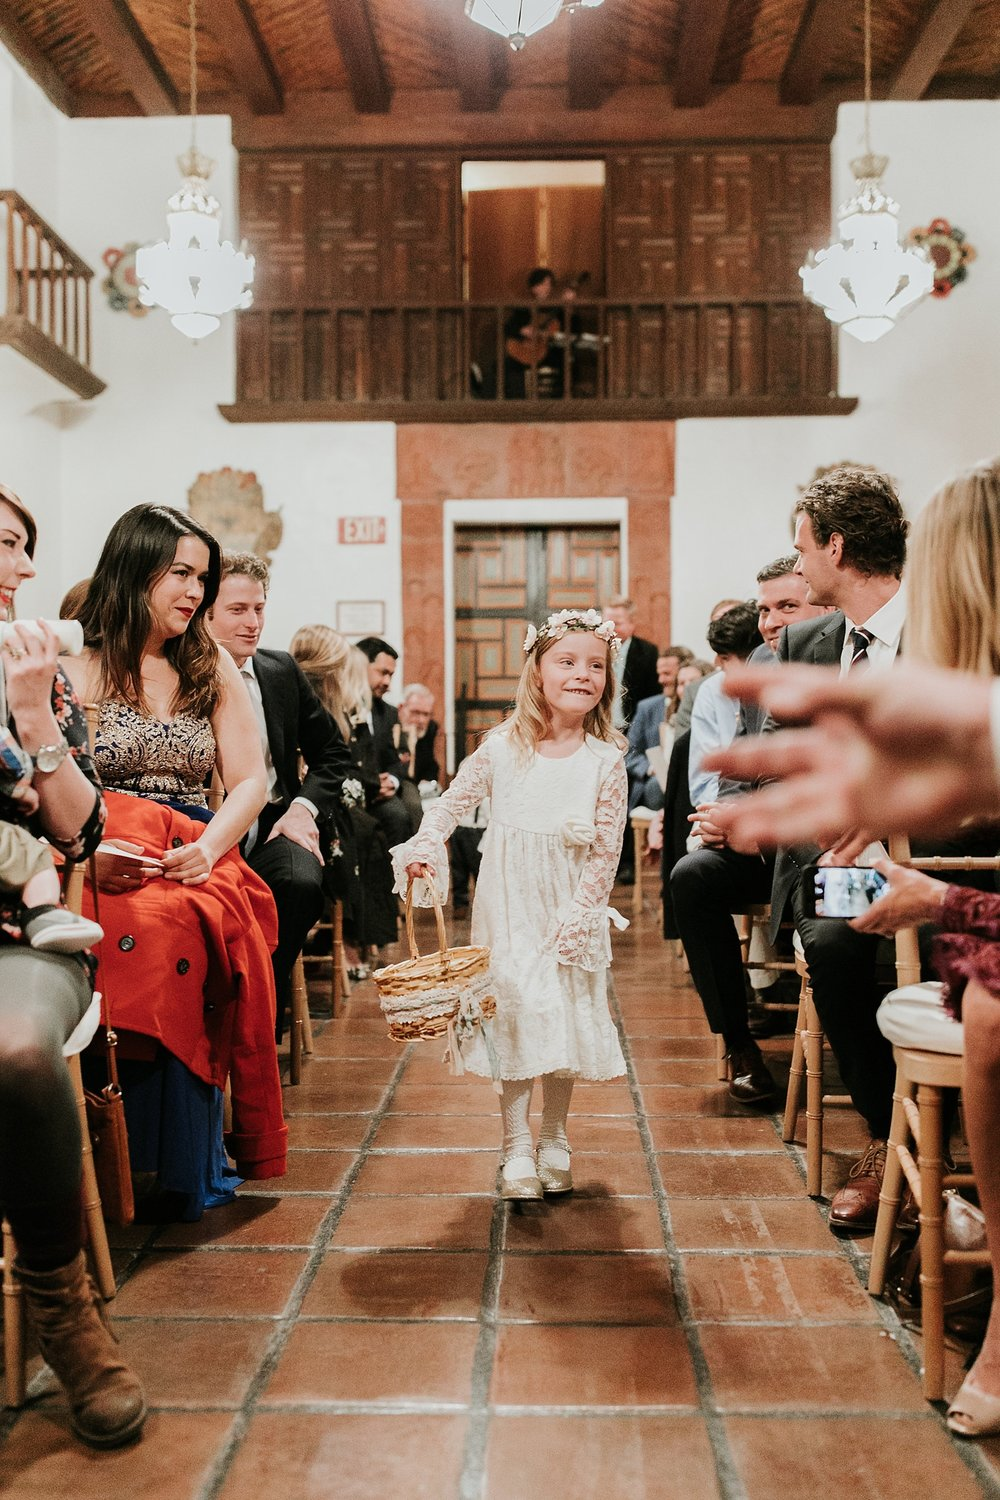 Alicia+lucia+photography+-+albuquerque+wedding+photographer+-+santa+fe+wedding+photography+-+new+mexico+wedding+photographer+-+la+fonda+wedding+-+la+fonda+winter+wedding_0072.jpg